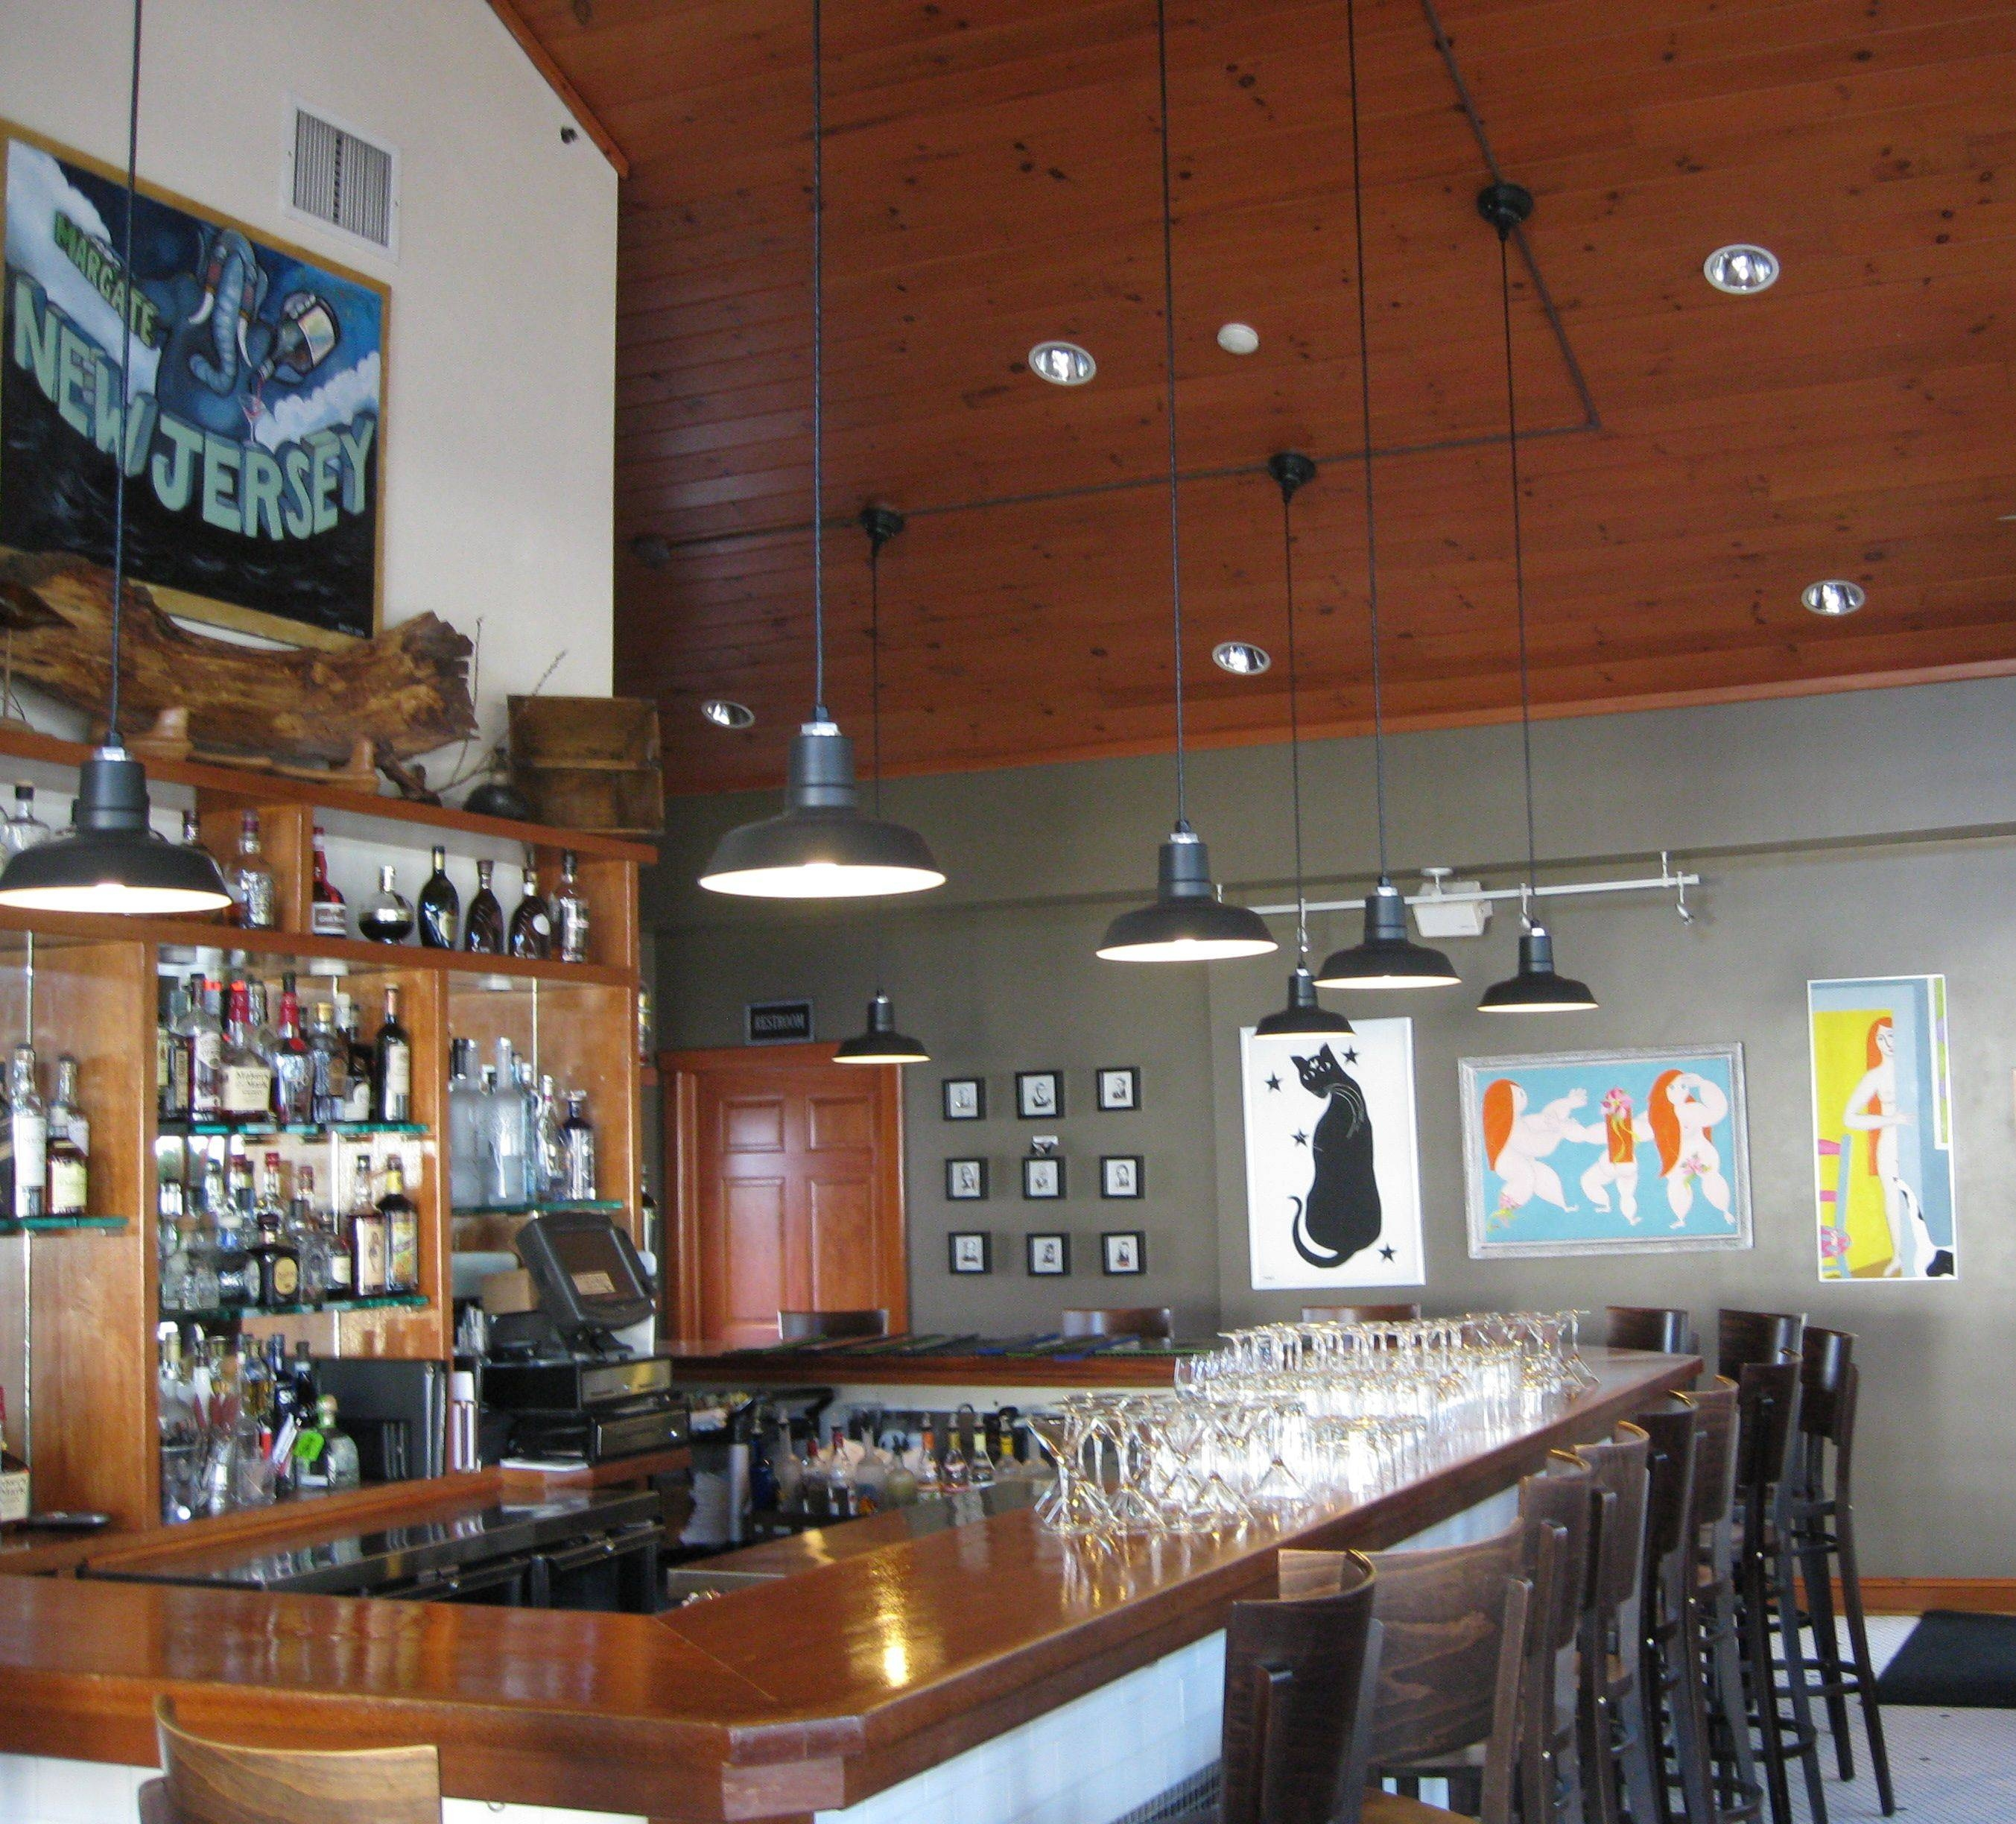 Led Barn Pendants Bring Charm, Savings To Jersey Oyster Bar | Blog with Restaurant Pendant Lights (Image 8 of 15)